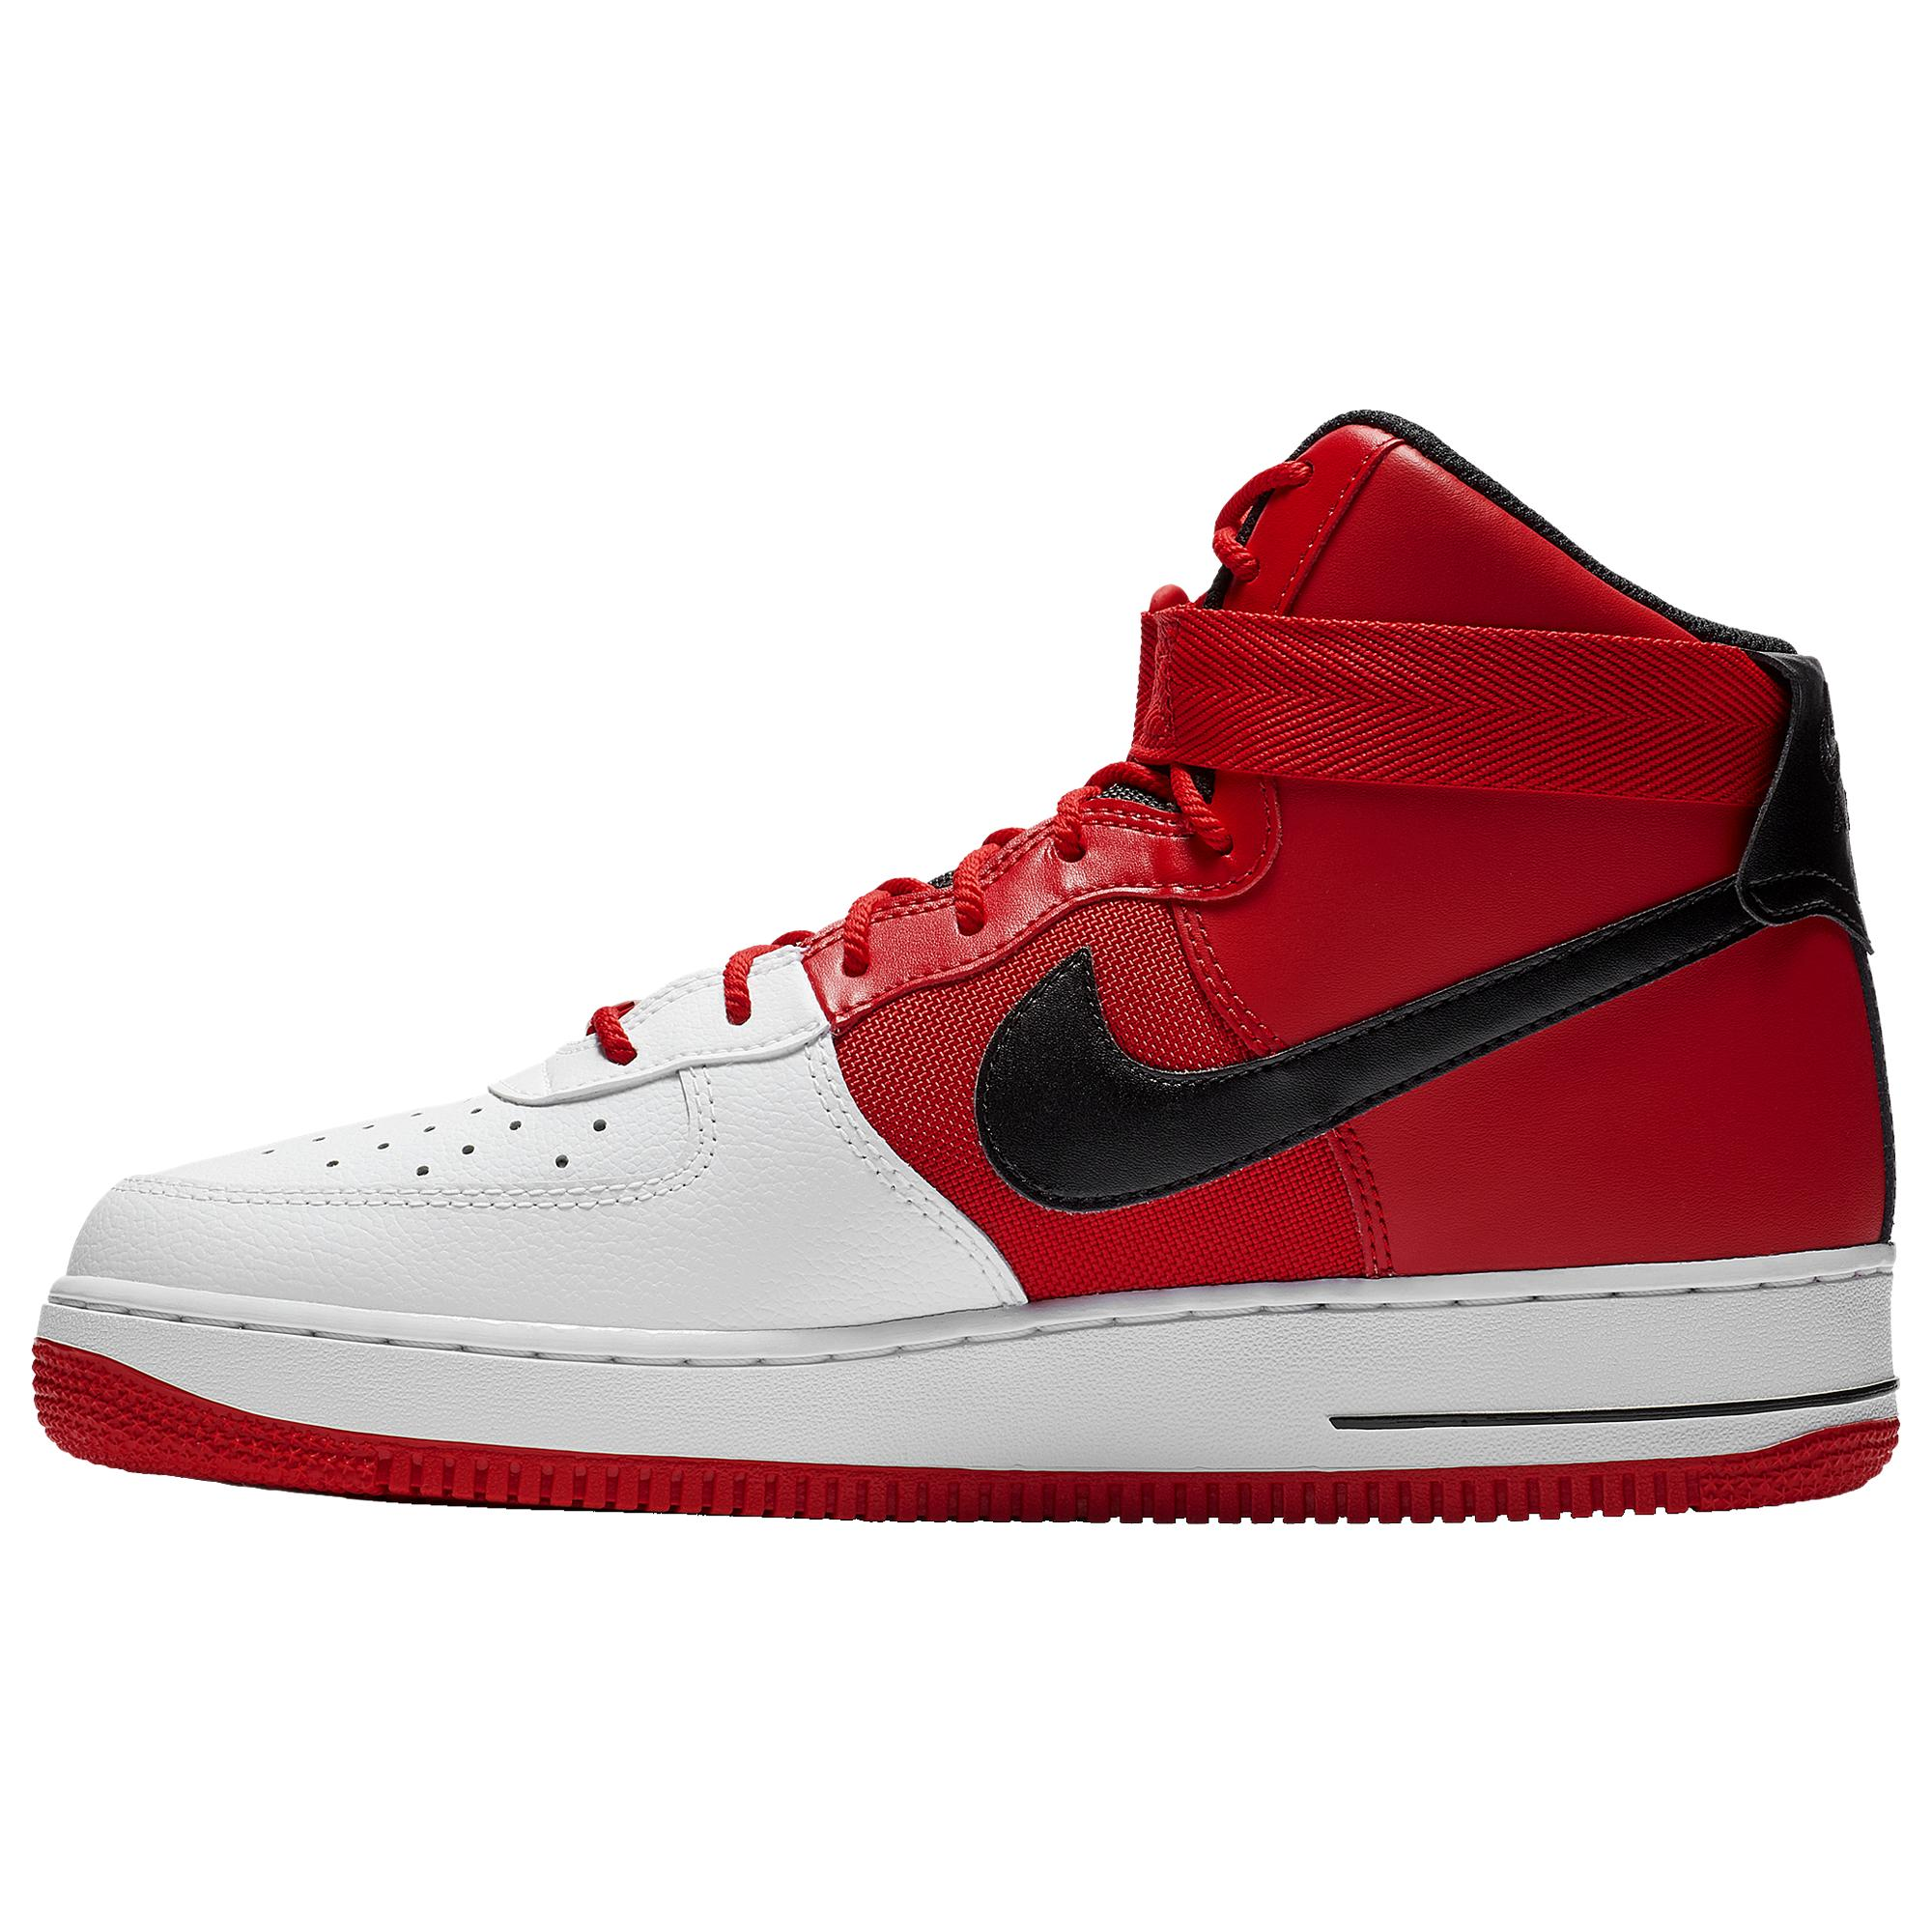 Nike Leather Air Force 1 High Lv8 Basketball Shoes In White Red